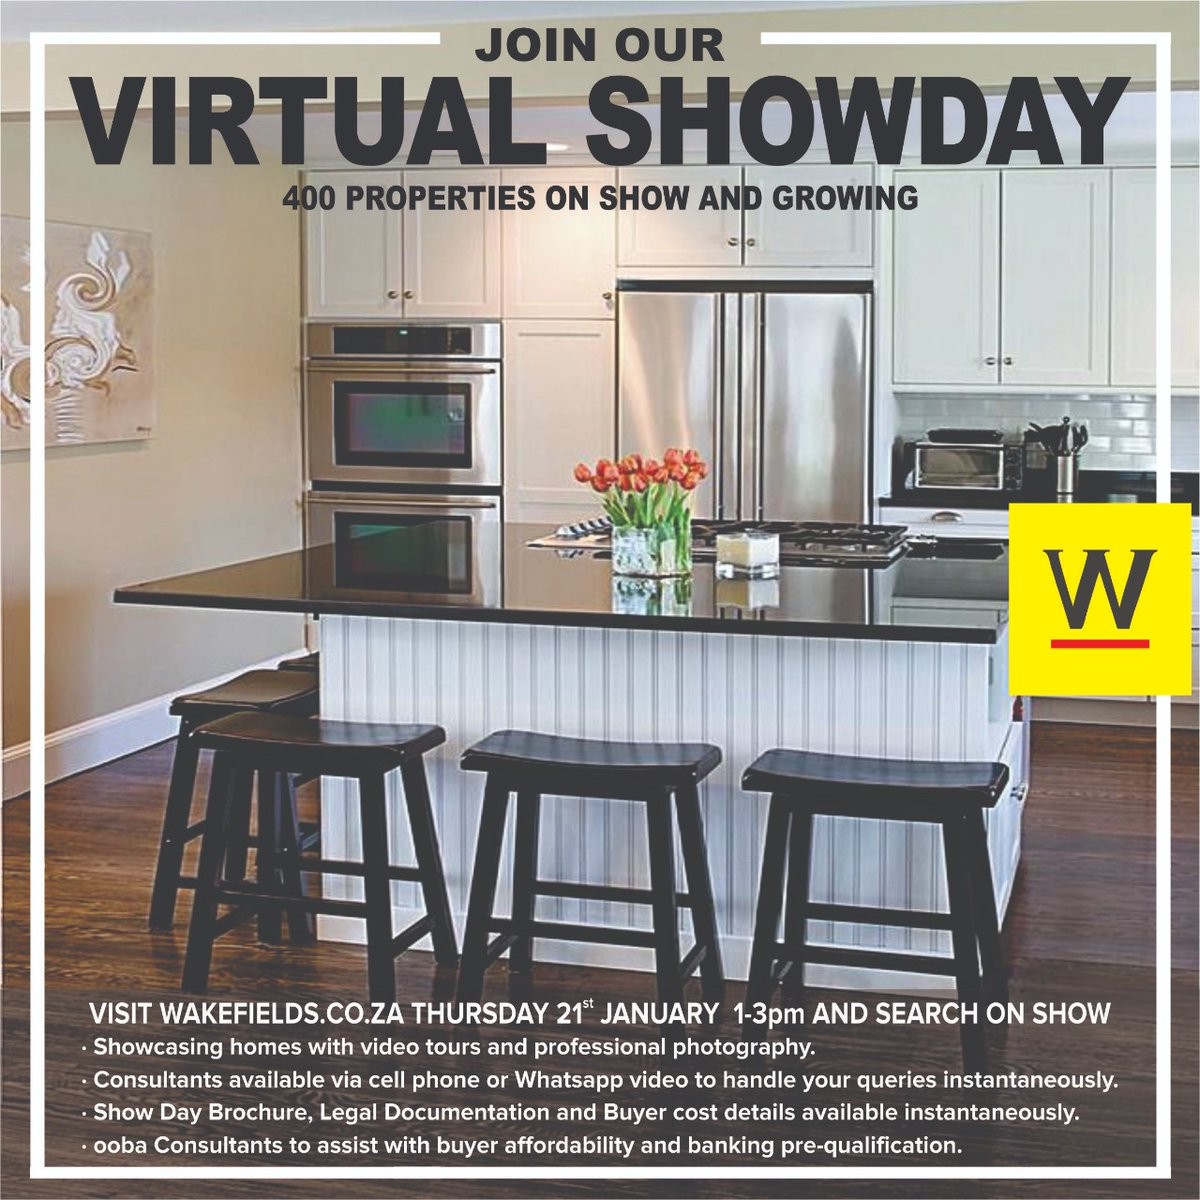 #WakefieldsWay #Wakefields_Westville #VirtualShow #Westville #KZNProperty #WeLoveKZN #thursdaymorning   Reminder of our Virtual Show Day on Thursday, 21 January 2021 between 1 and 3.